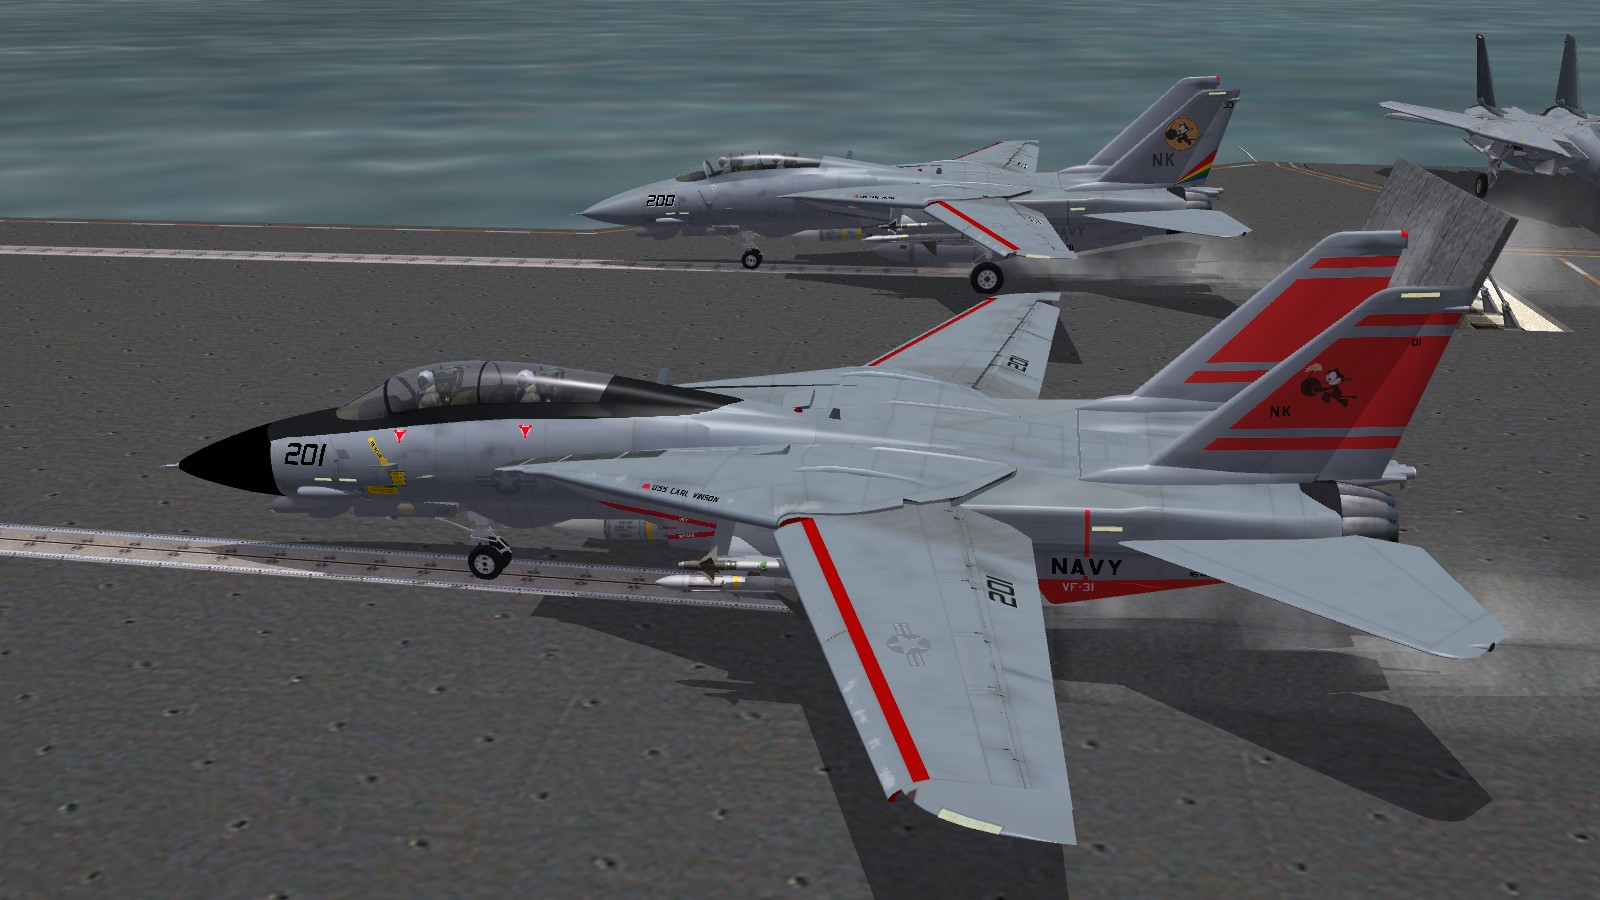 VF-11 and VF-31 F-14D